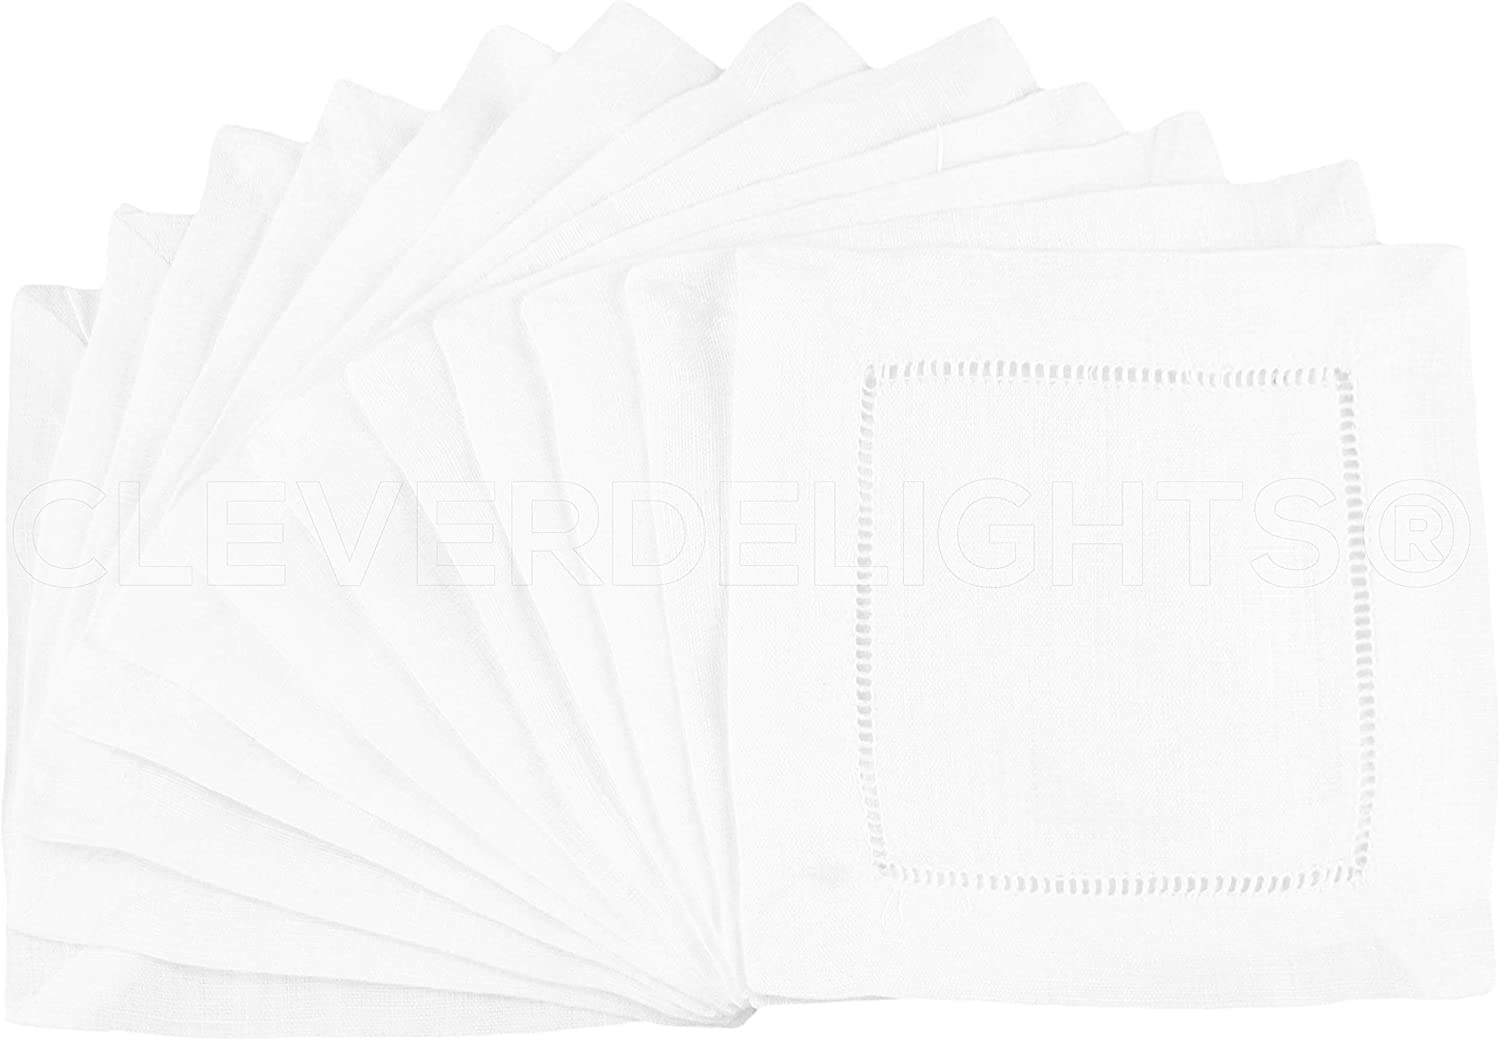 "12 CleverDelights White 100% Cotton Hemstitch Cocktail Napkins - 6"" x 6"" Ladder Hemstitch Cloth Beverage Napkins - 100% Cotton 6 Inch Coaster"